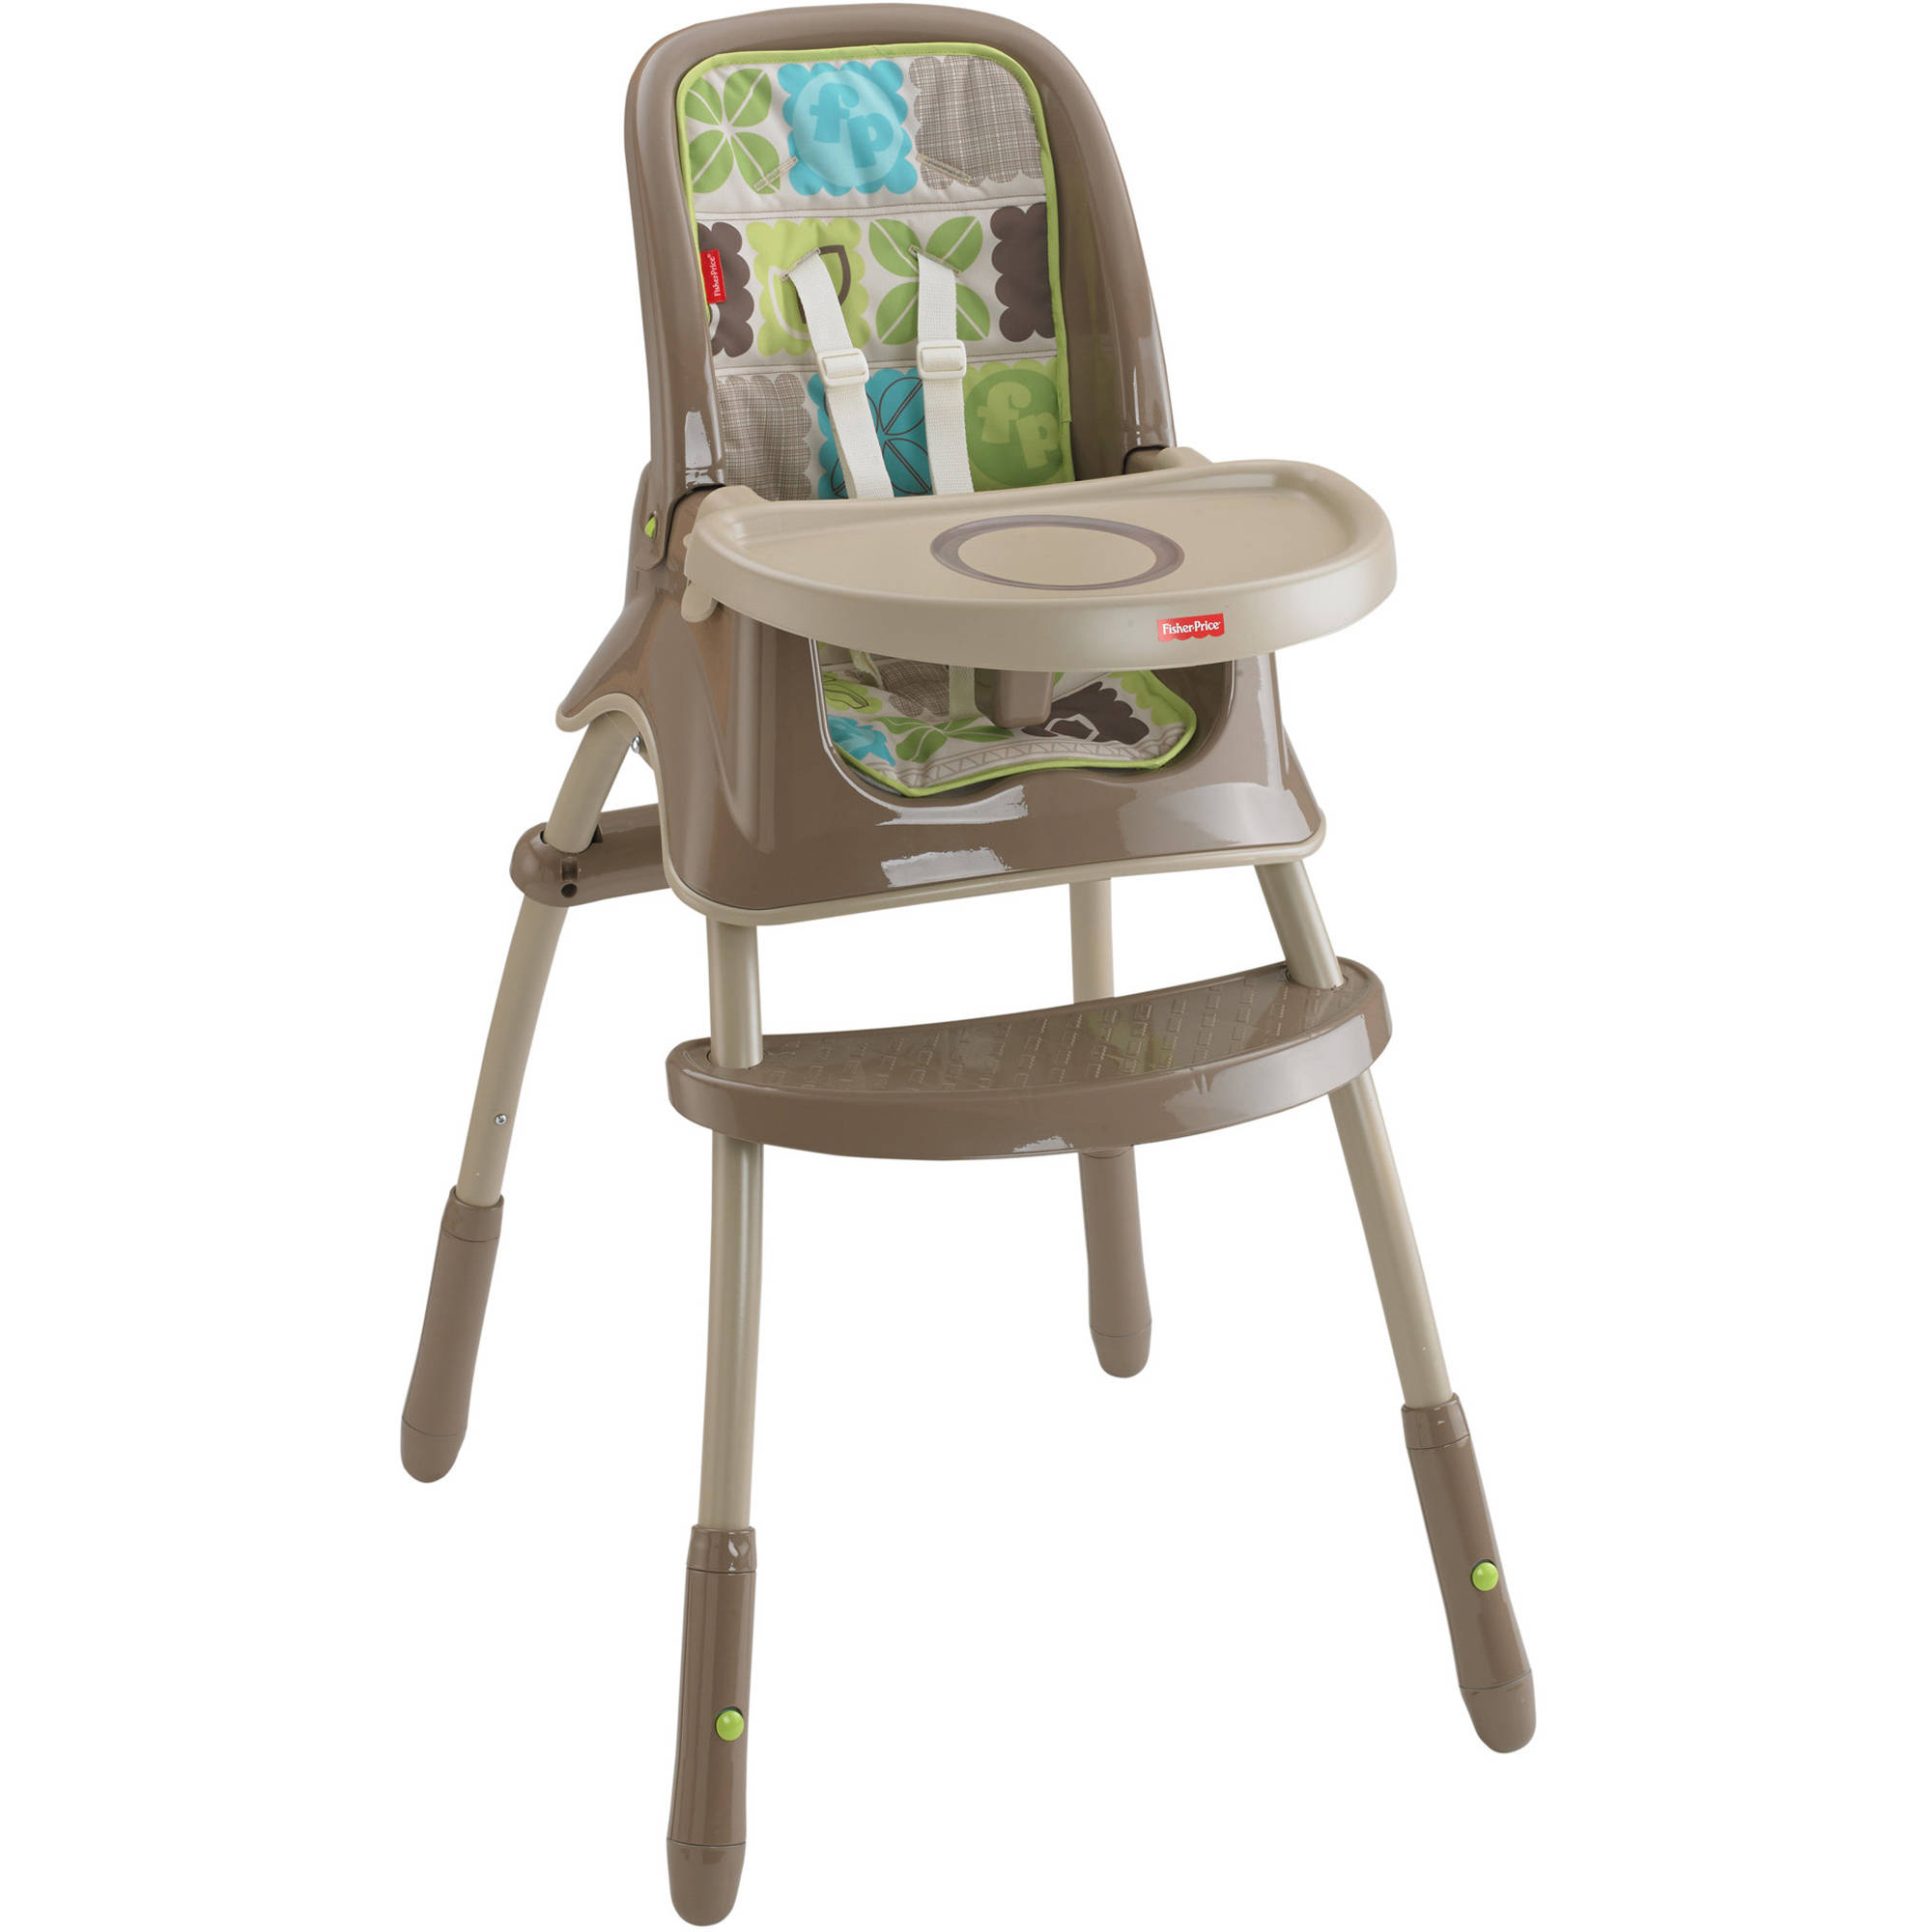 high chair recall etac shower parts fisher price swing to  roselawnlutheran